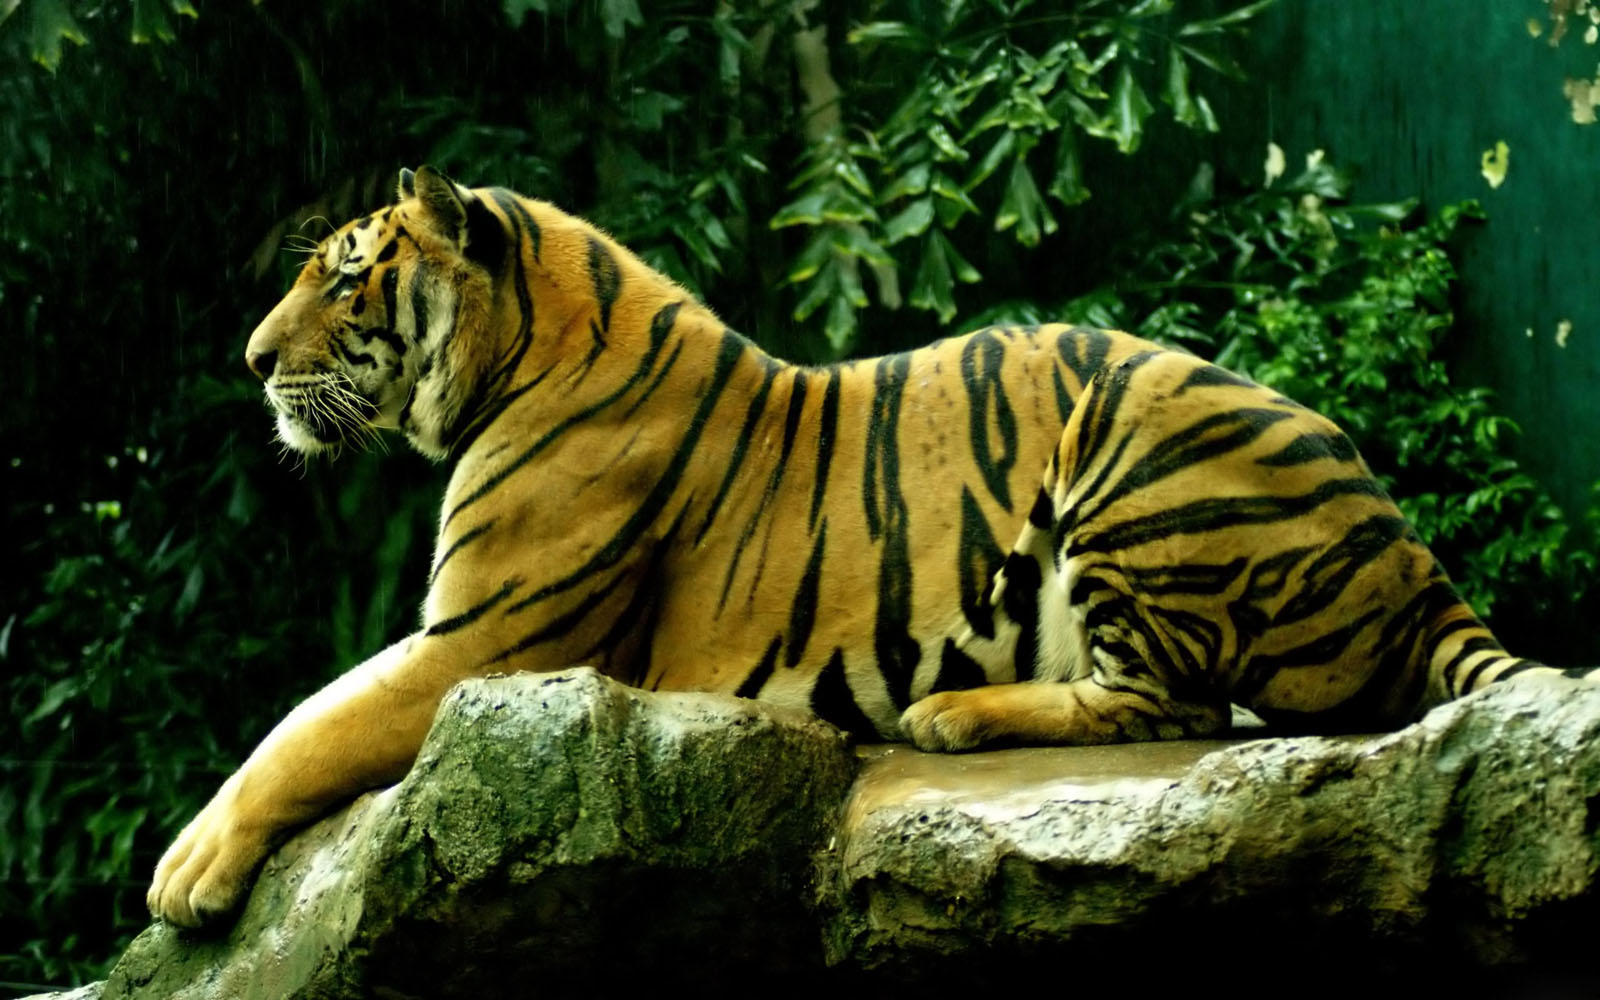 Wallpapers bengal tiger wallpapers - Hd wilderness wallpapers ...